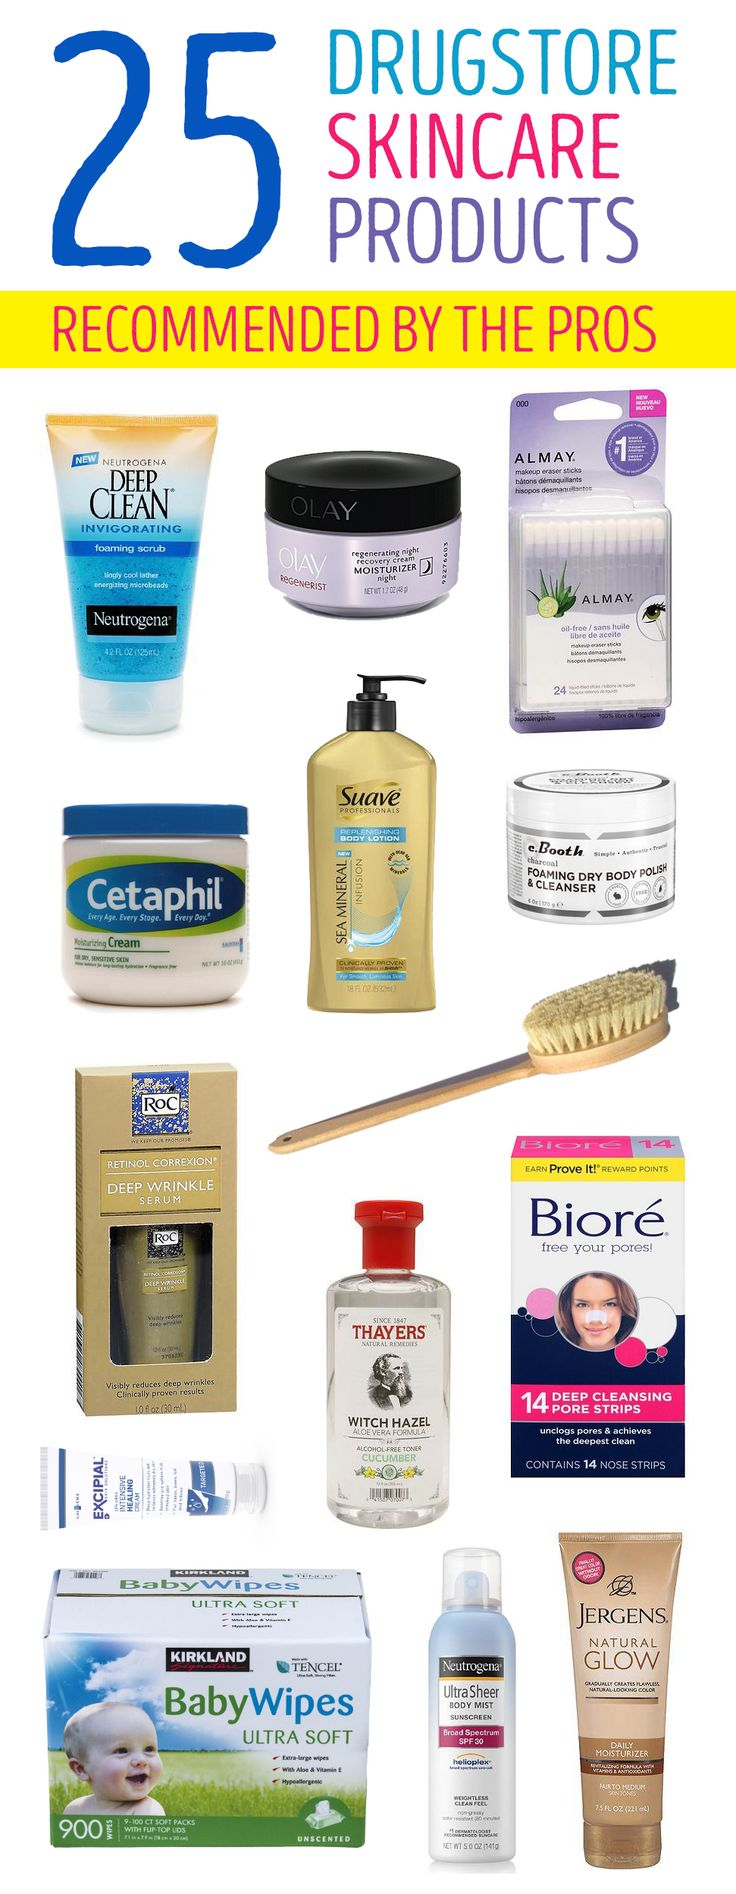 Celebrity skincare experts shared their top drugstore picks. You don't have to spend a lot of money to have great skin and you might already be using of these products in your beauty routine.